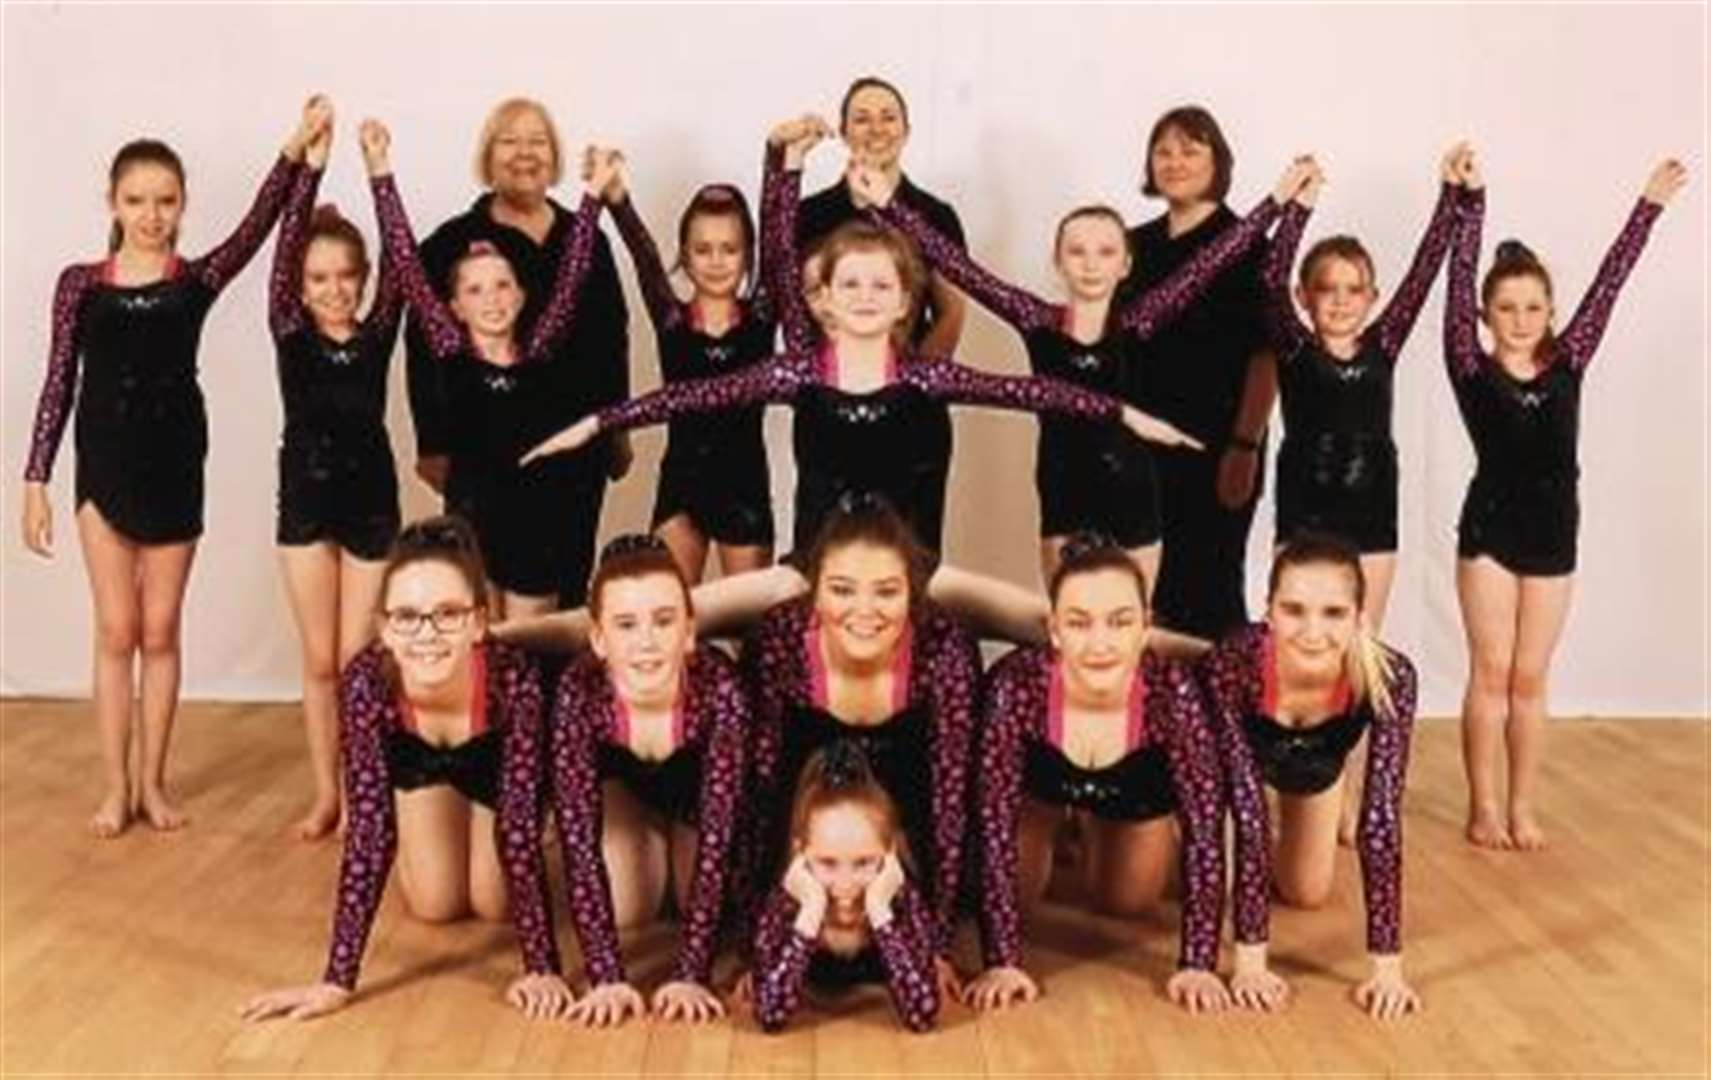 Caithness dynamos thrill crowd at Gymfest